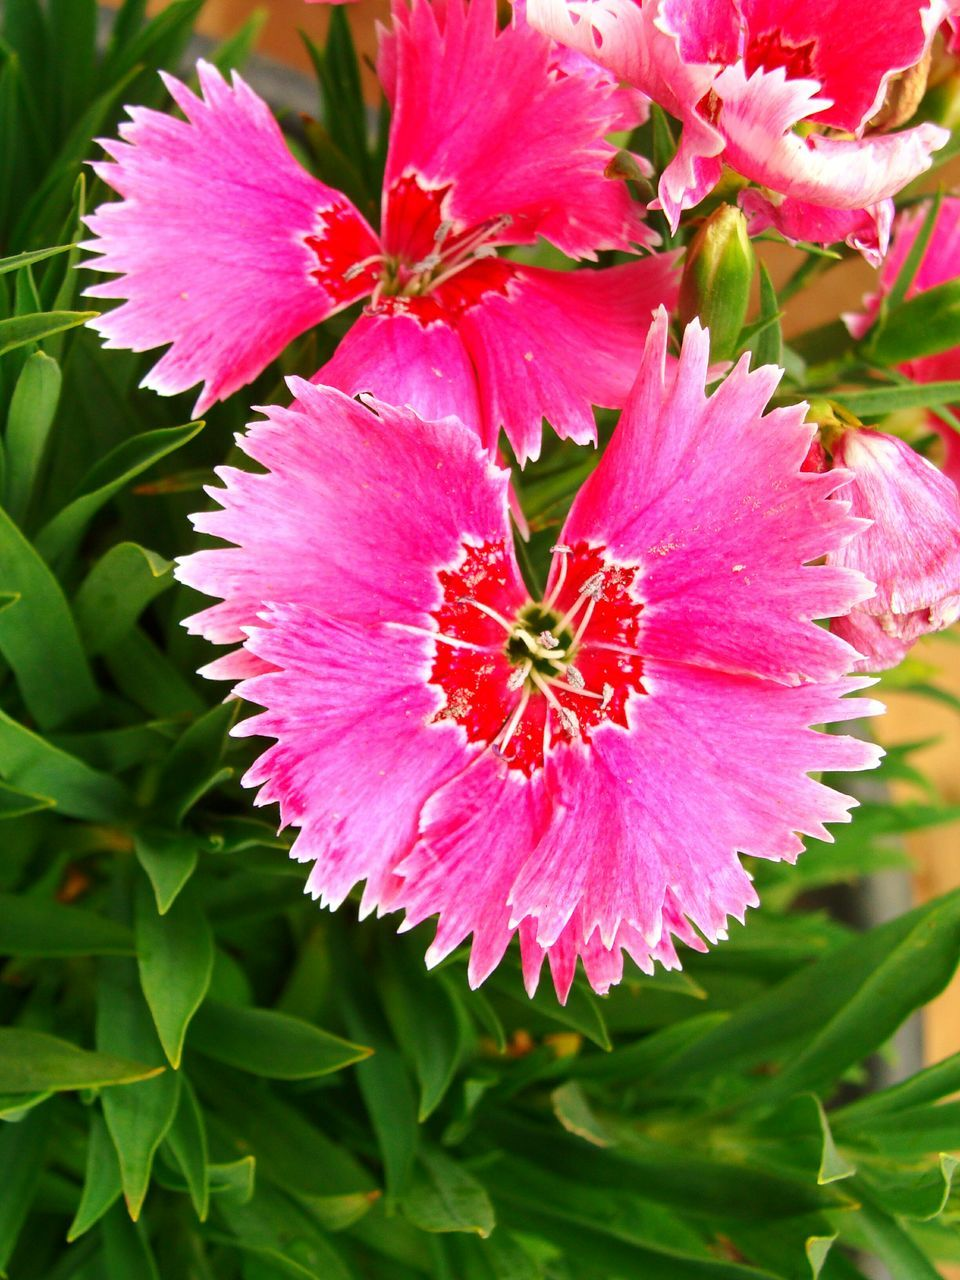 flower, petal, beauty in nature, nature, growth, fragility, flower head, freshness, plant, no people, leaf, pink color, day, outdoors, blooming, close-up, stamen